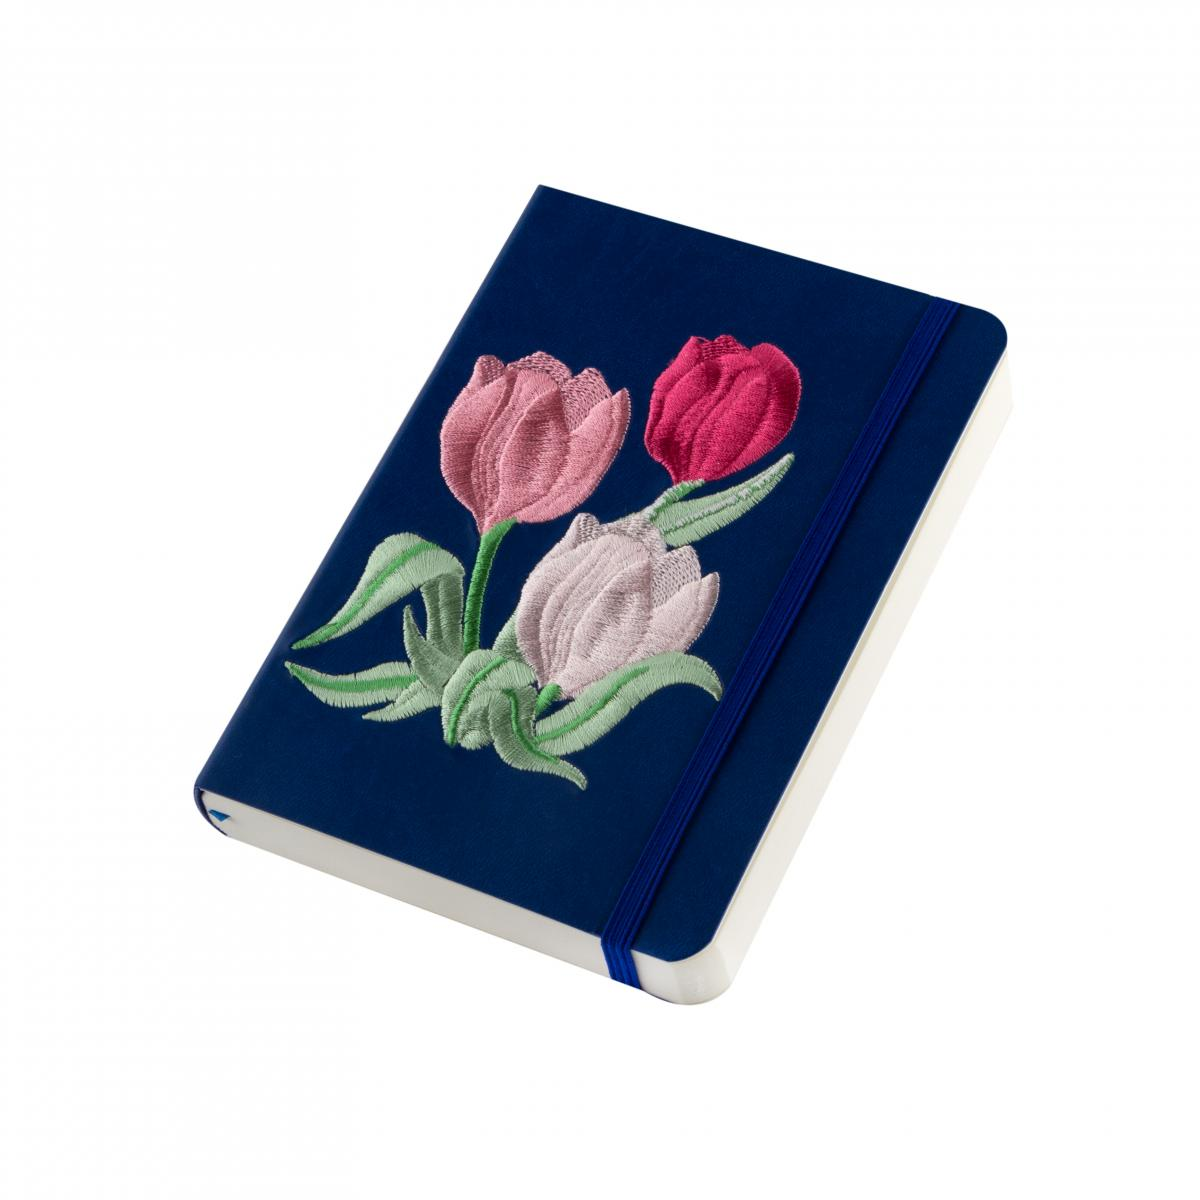 "Eco-leather notebook with embroidery ""Tulips"", dark blue. Photo №2. 